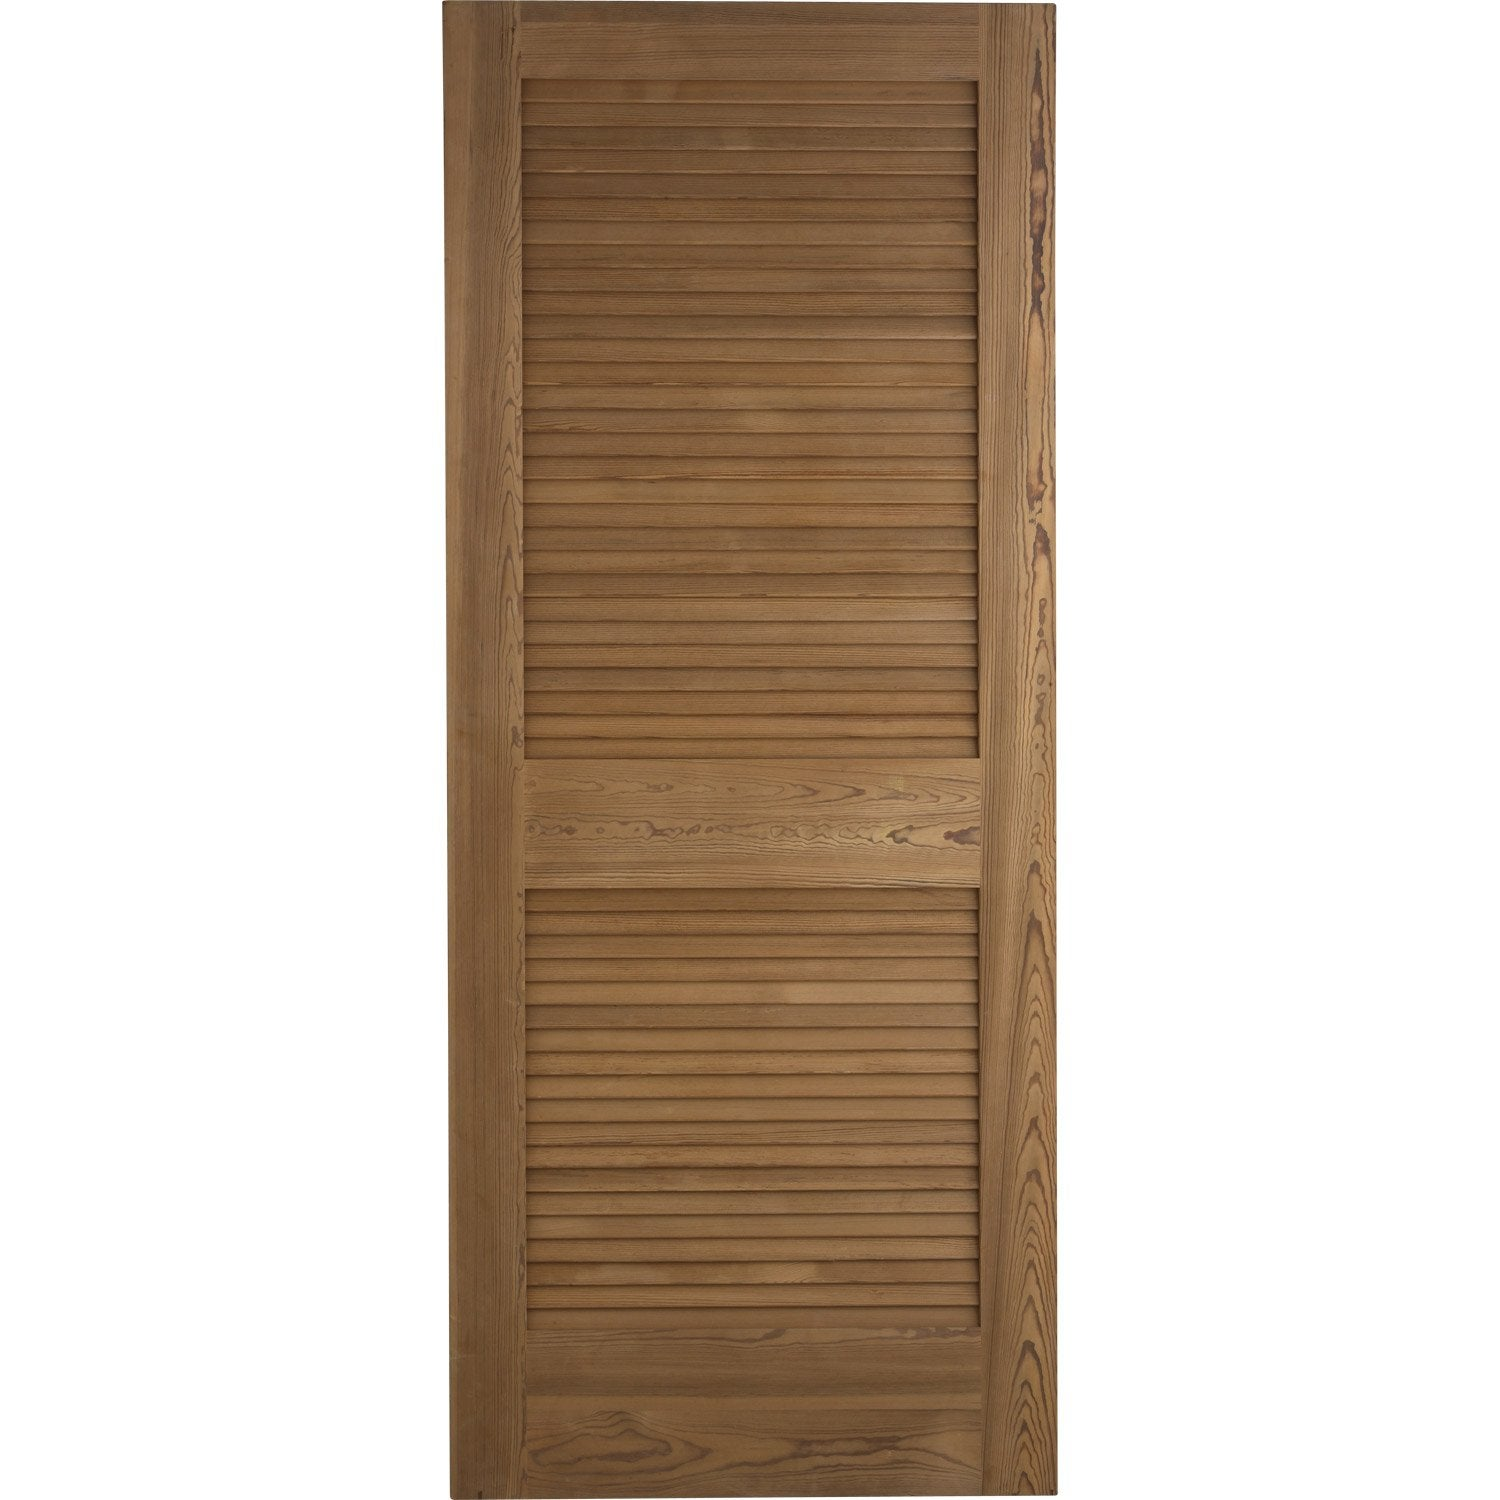 Porte coulissante pin plaqu marron java artens 204 x 83 - Porte interieure coulissante leroy merlin ...